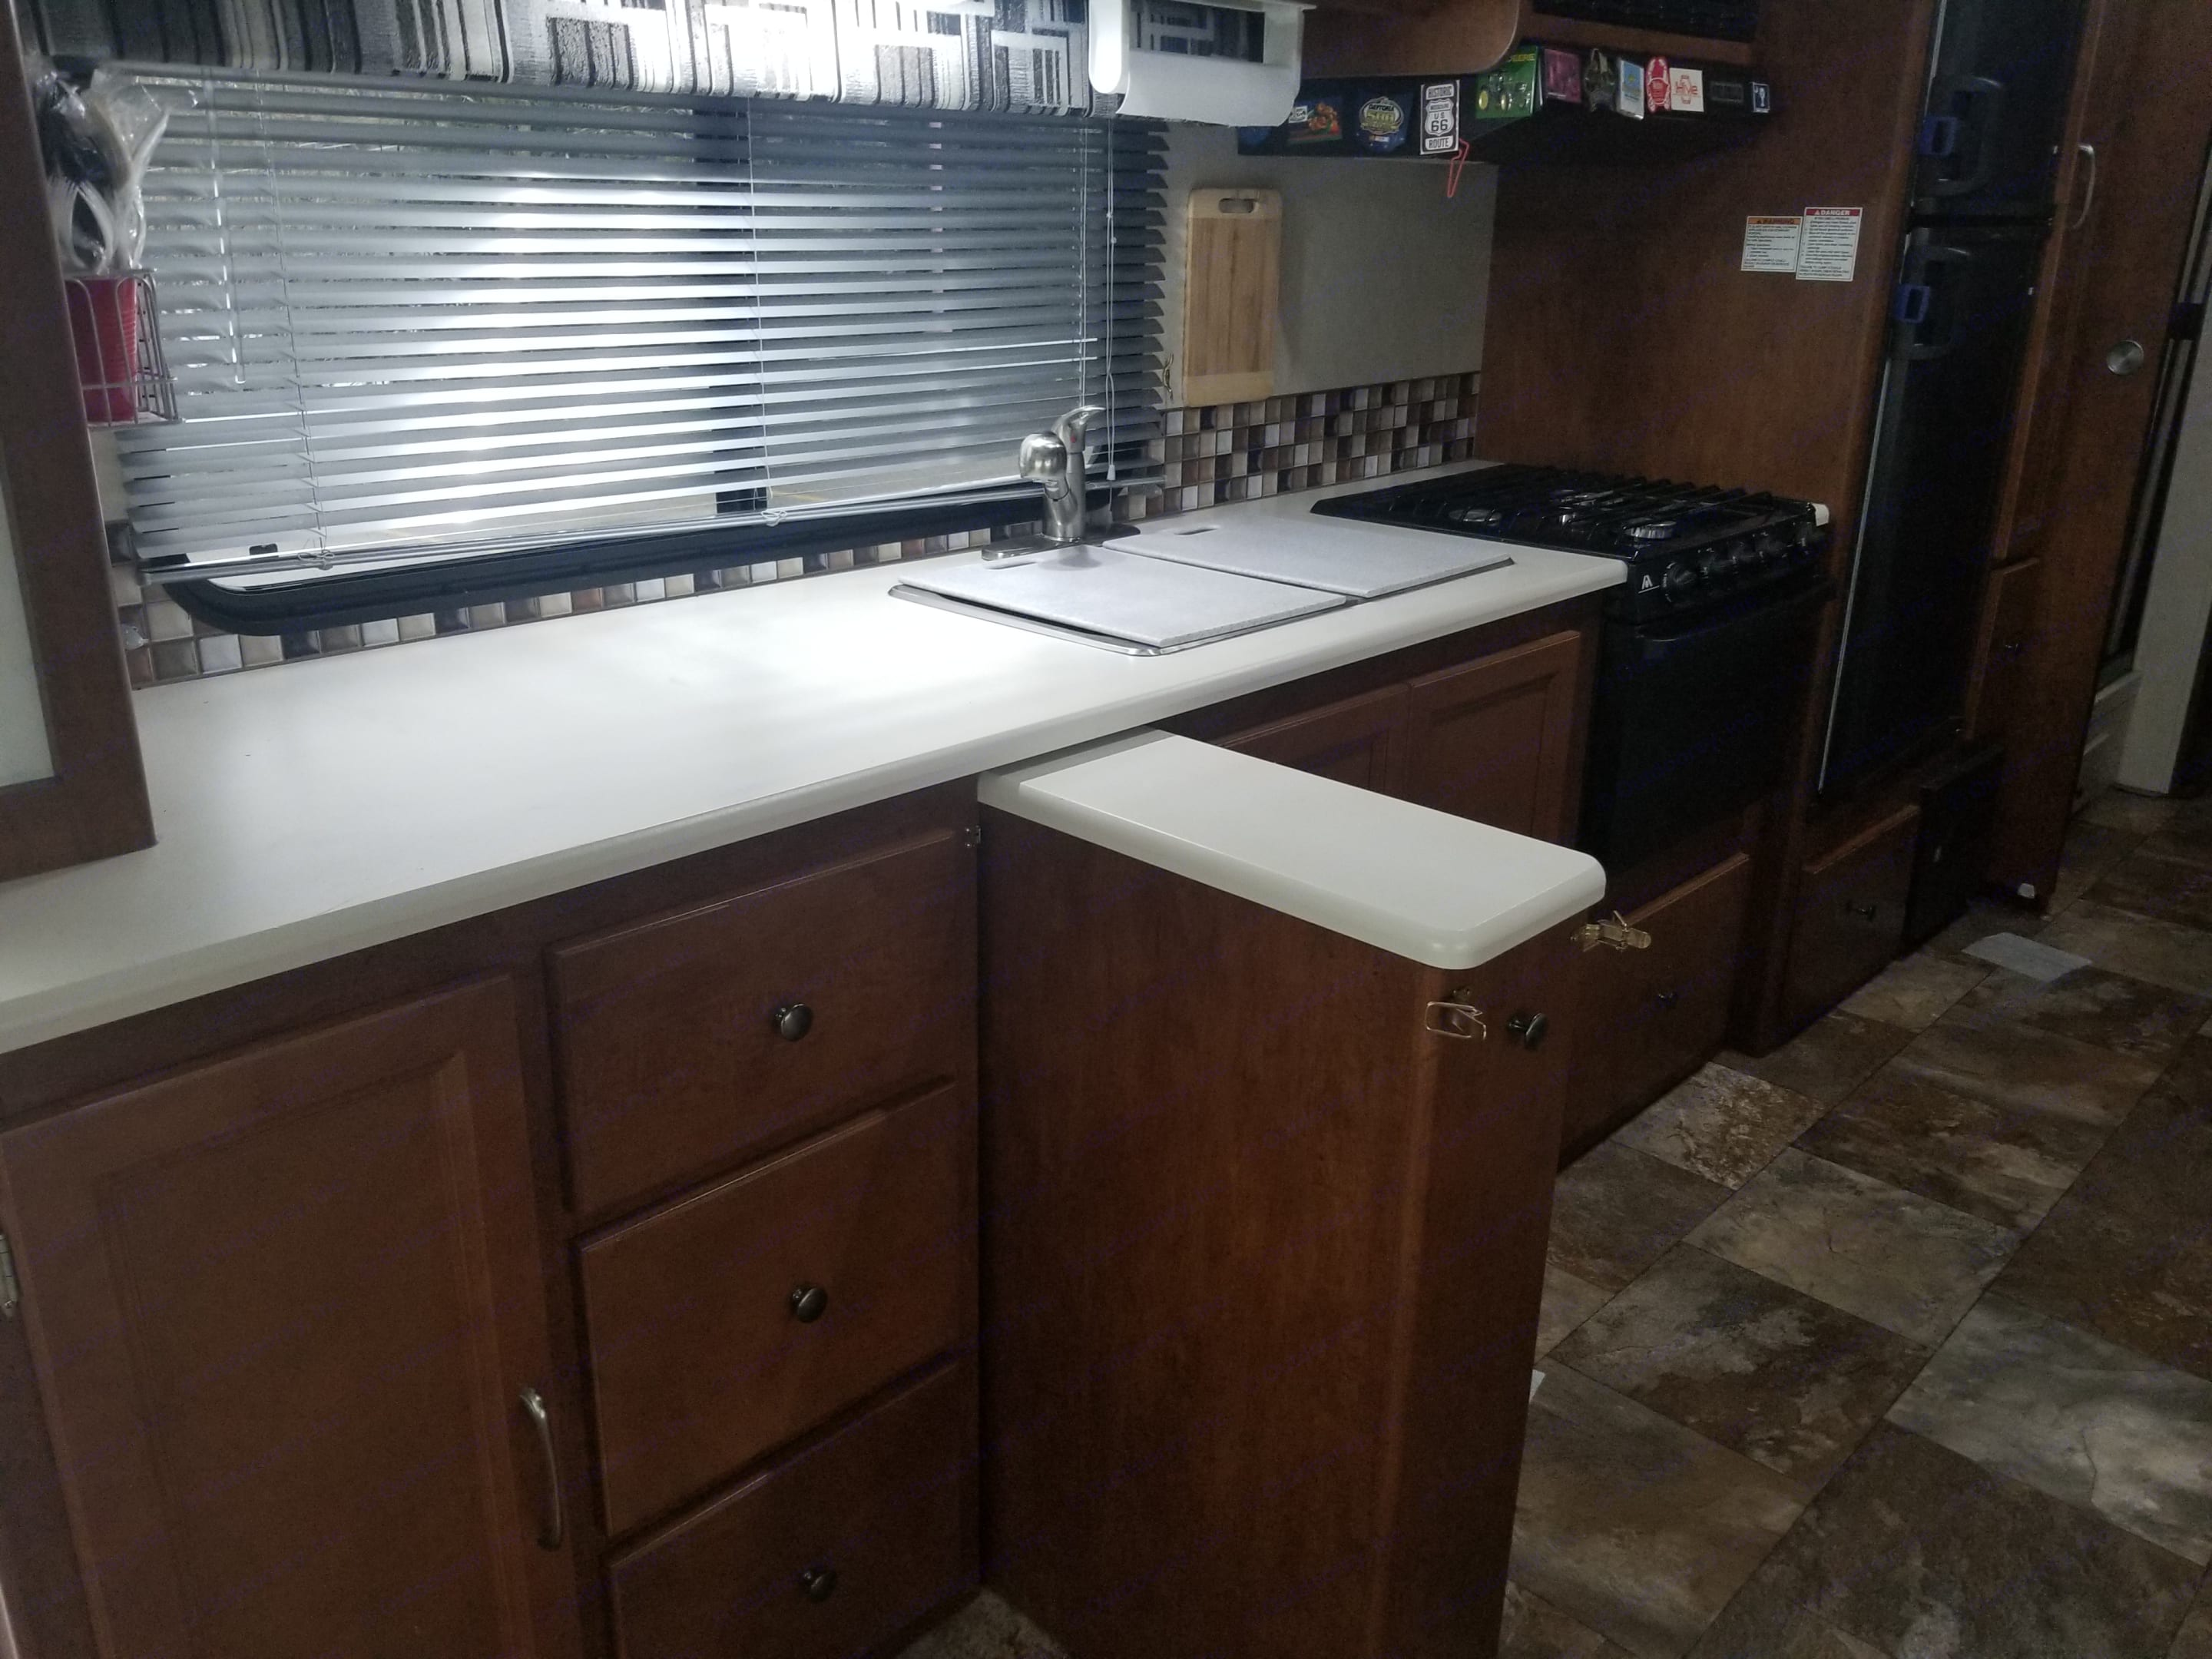 Slid out storage and additional countertop space. Coachmen Pursuit 2014